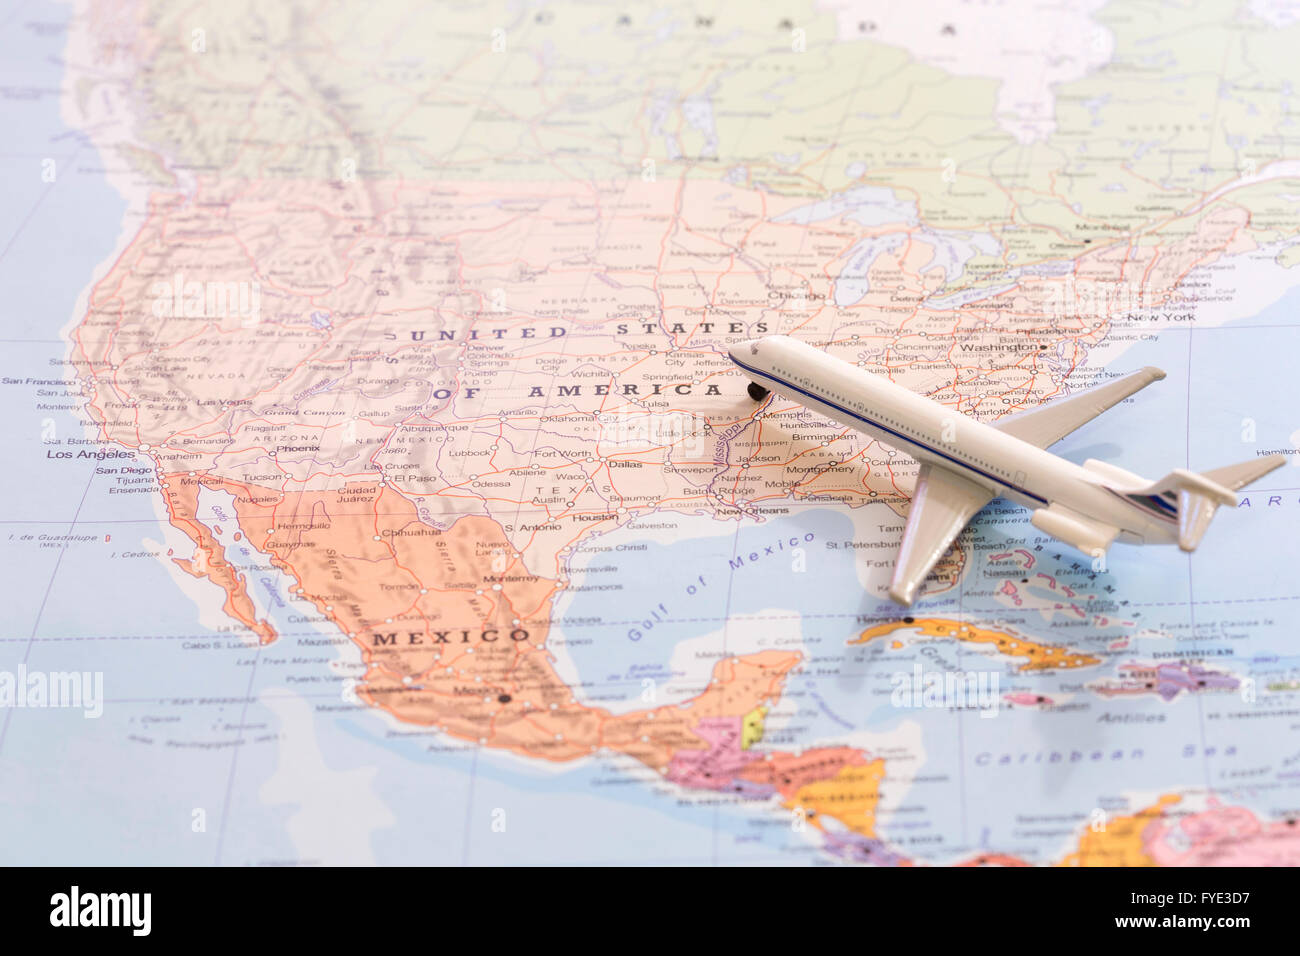 Miniature Of A Passenger Plane Flying On The Map Of United States Of America From South East Conceptual Image For Tourism And T